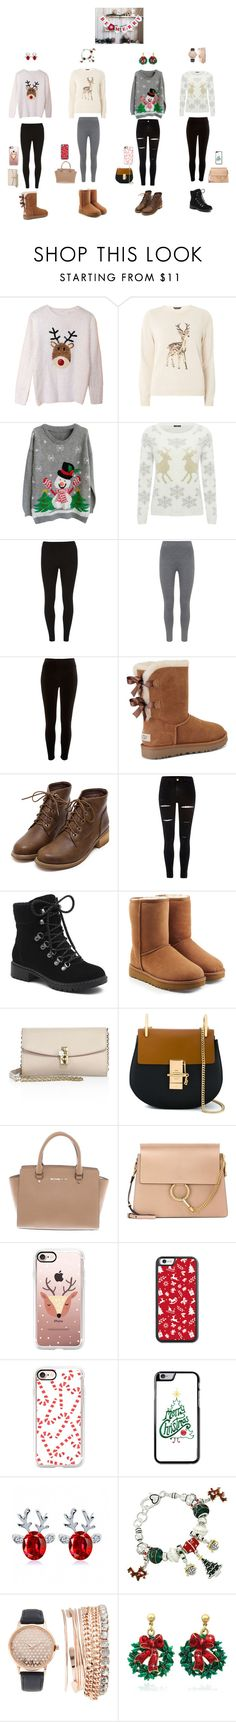 """Untitled #123"" by loveyourlife03 ❤ liked on Polyvore featuring Dorothy Perkins, M&Co, Mint Velvet, River Island, UGG, G.H. Bass & Co., Dolce&Gabbana, Chloé, Michael Kors and Casetify"